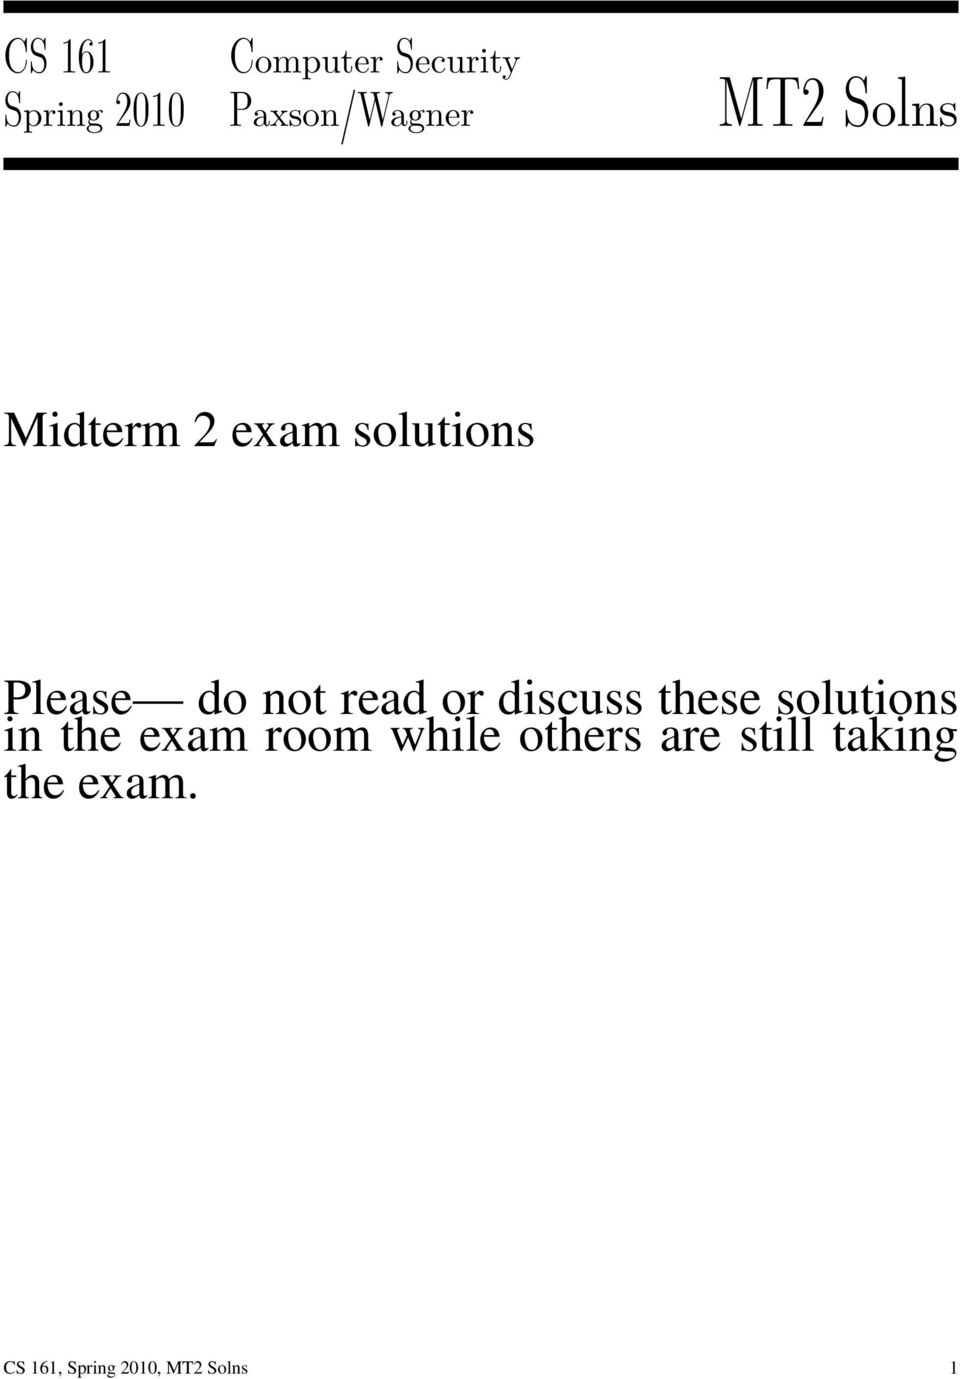 discuss these solutions in the exam room while others